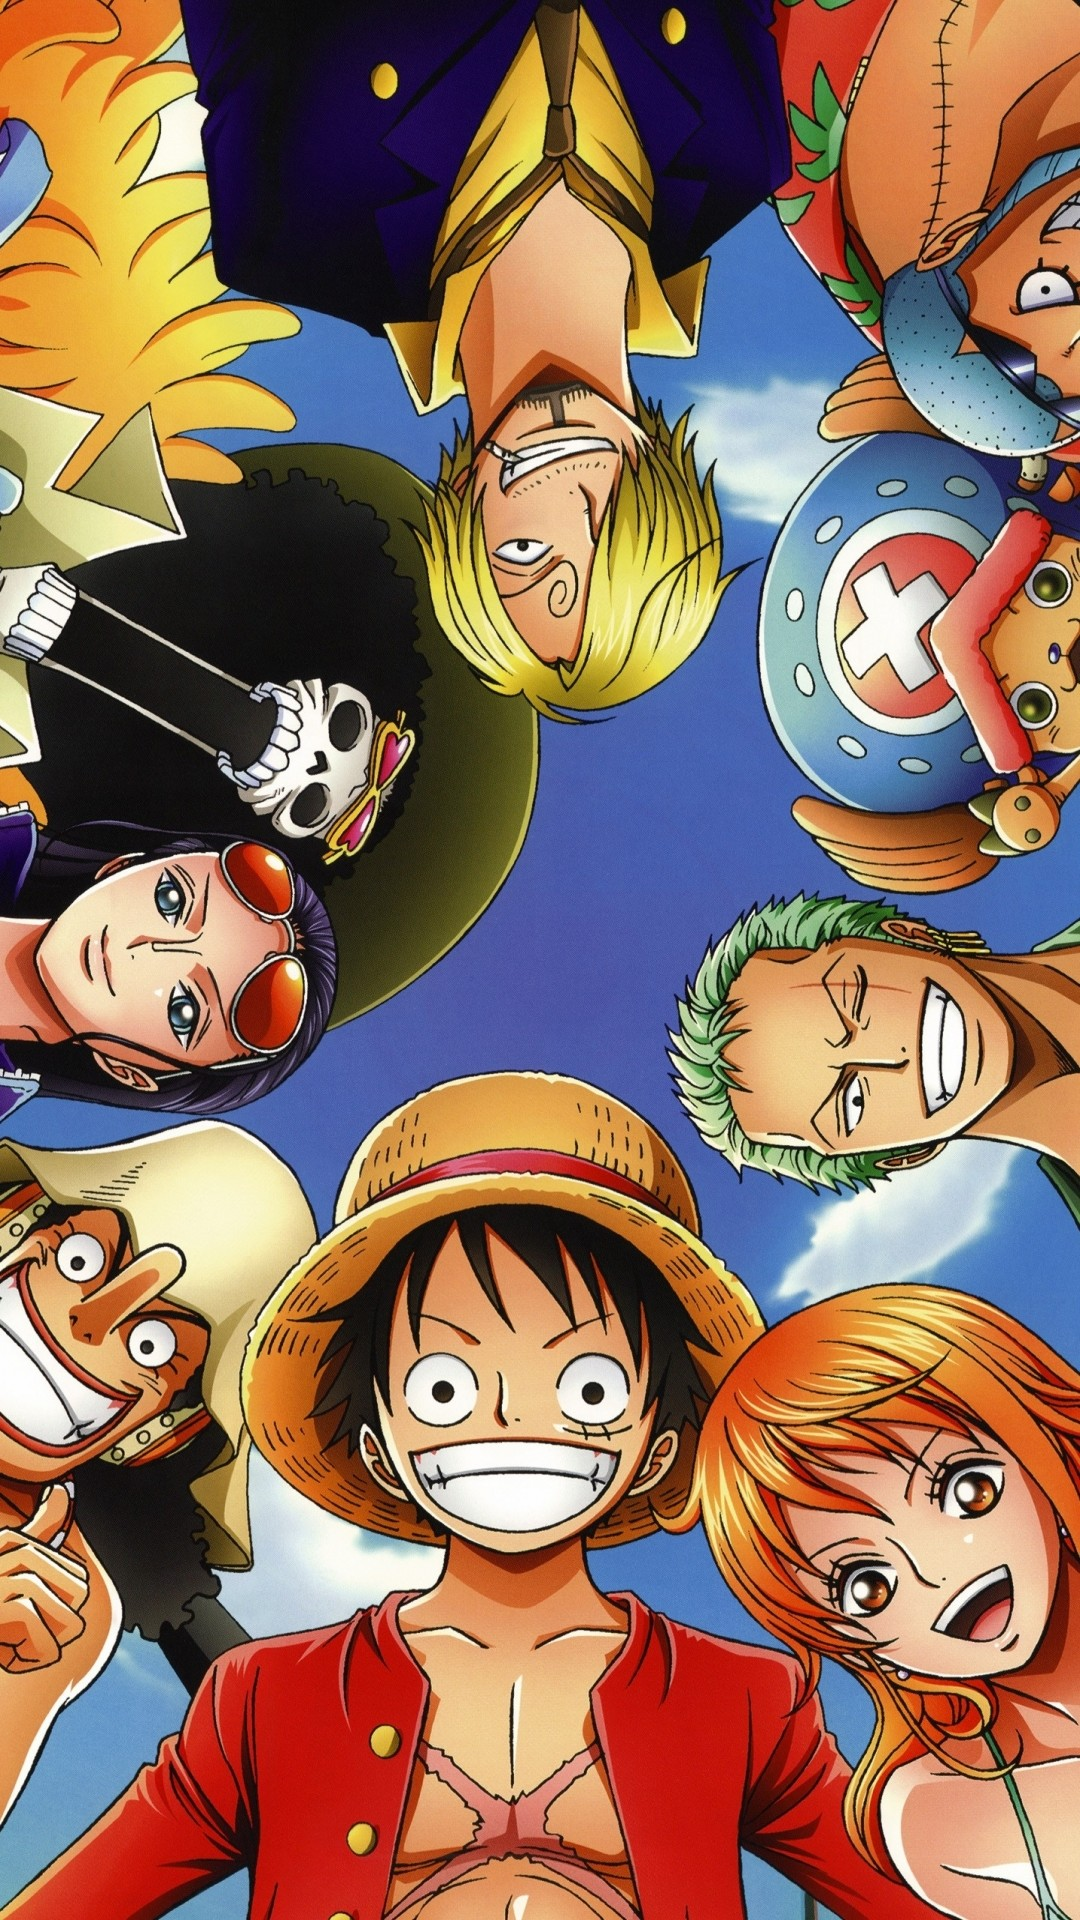 Epic One Piece Wallpaper HD (58+ images)